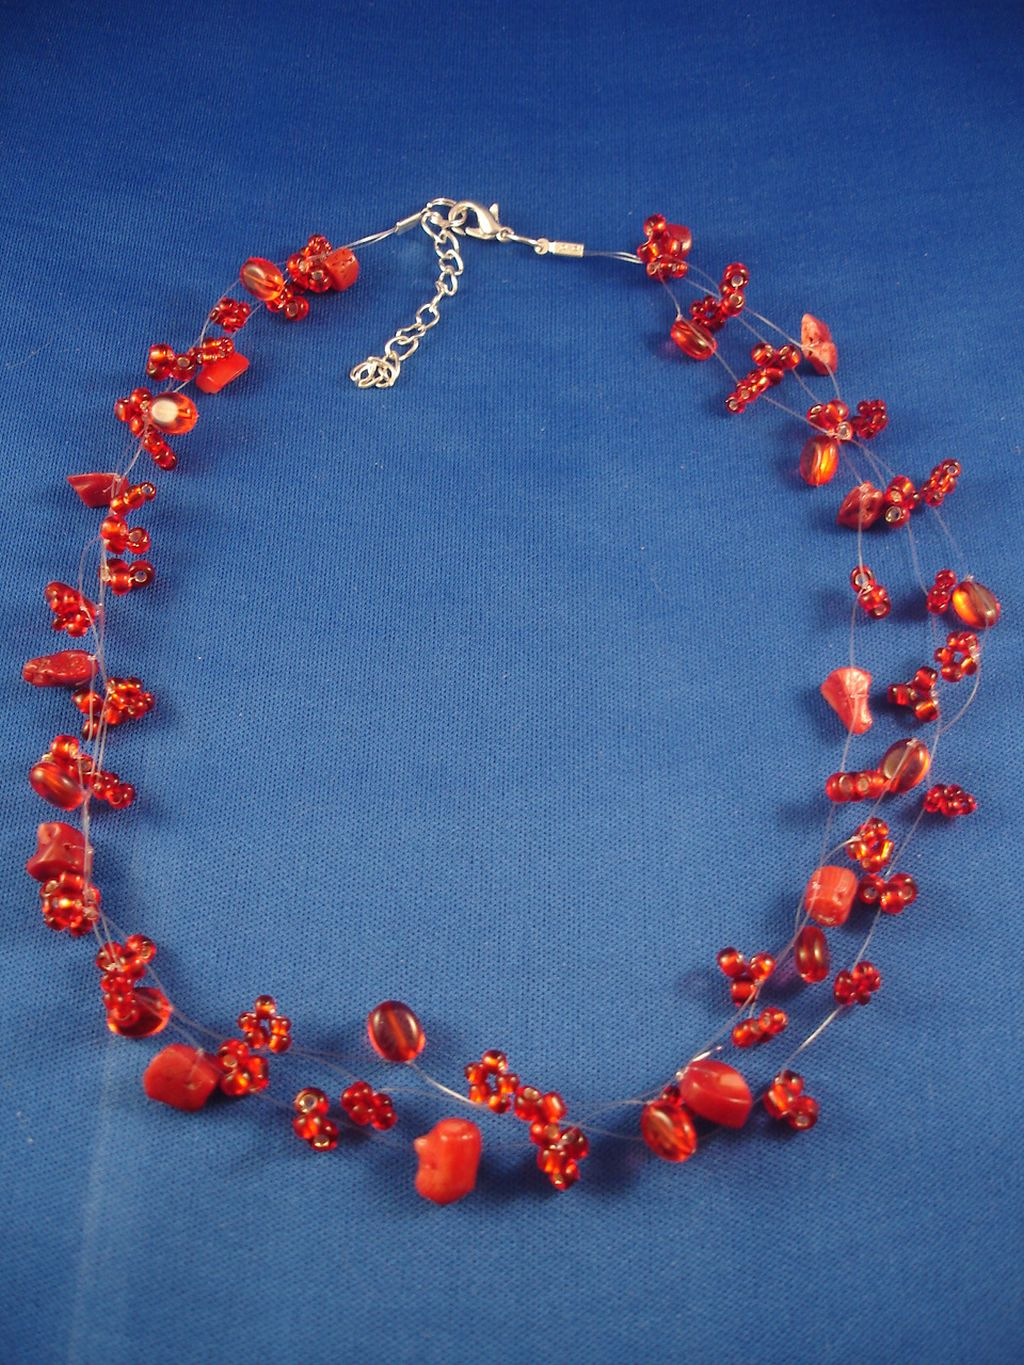 Necklace, Three Layers of Red Beads & Genuine Stones, Fashion European Jewelry